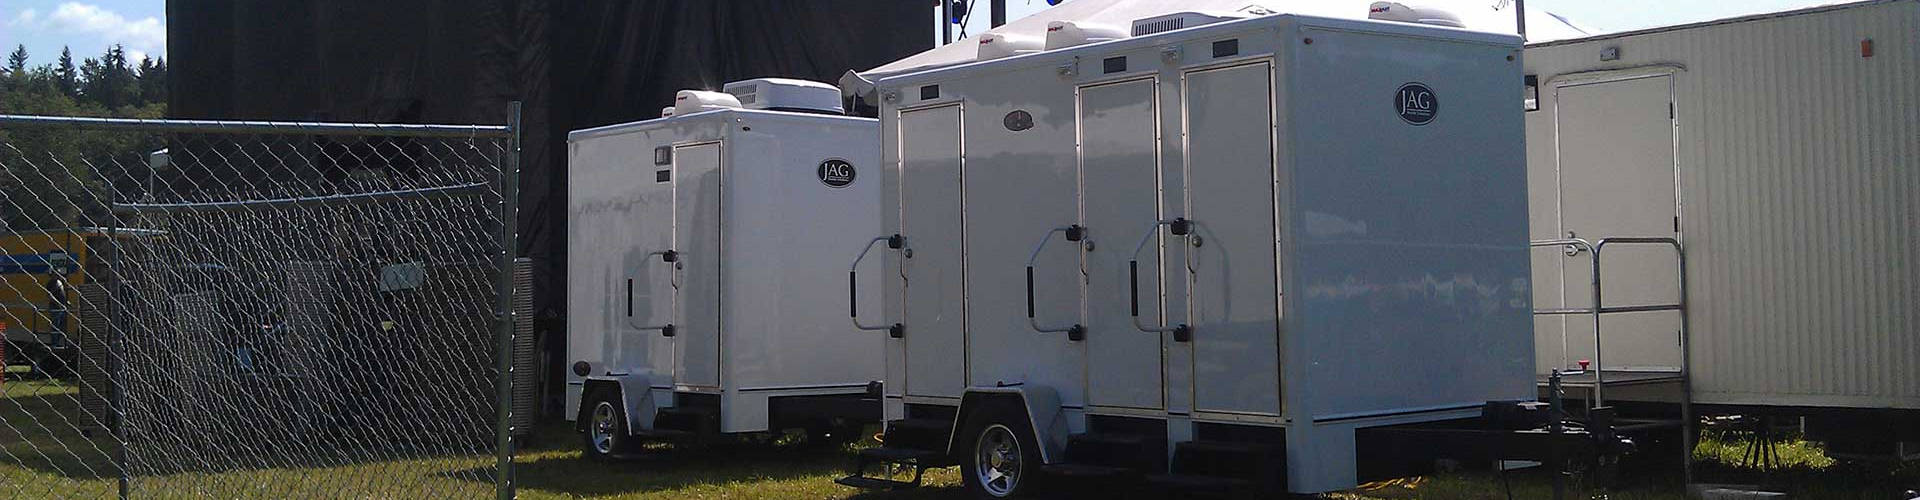 Portable Restroom Rentals in Bellingham, Skagit County, Mt Vernon, Sedro Woolley, Burlington, Anacortes, San Juan Islands